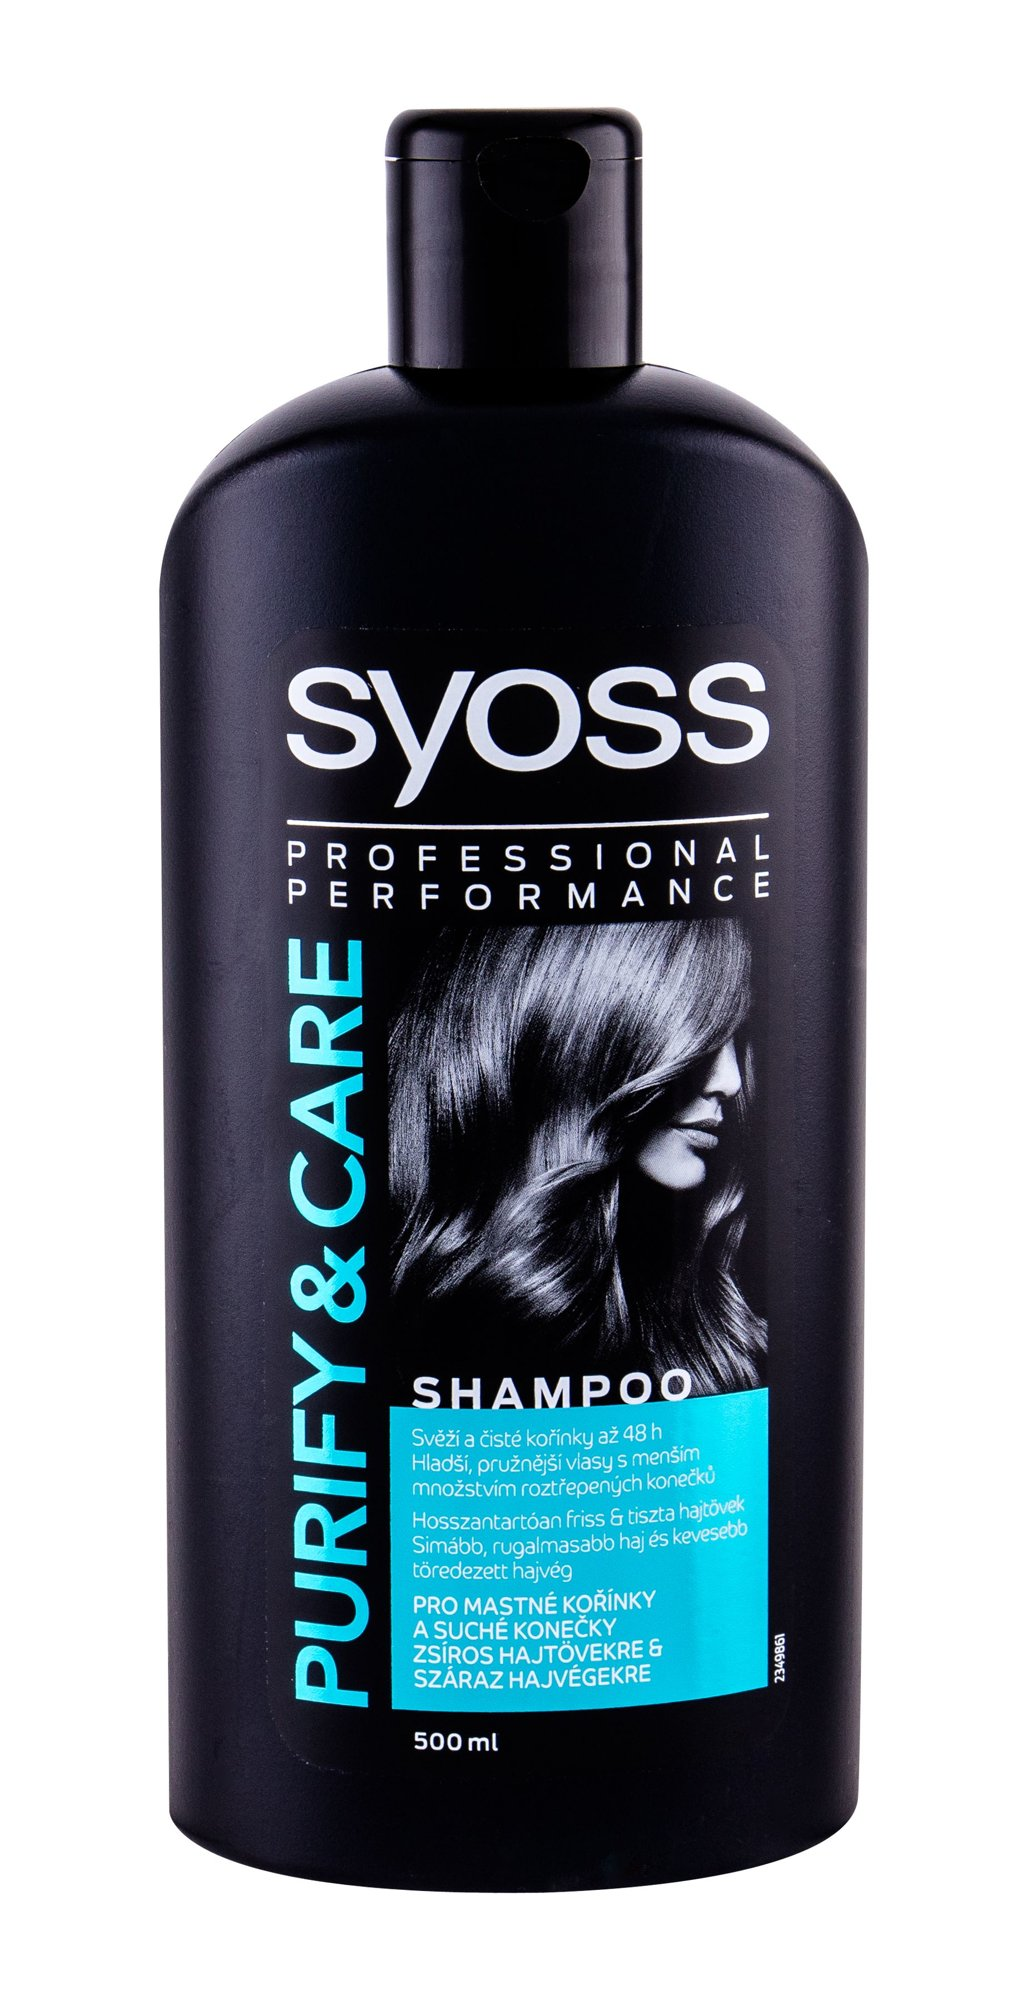 Syoss Professional Performance Purify & Care, Sampon 500ml